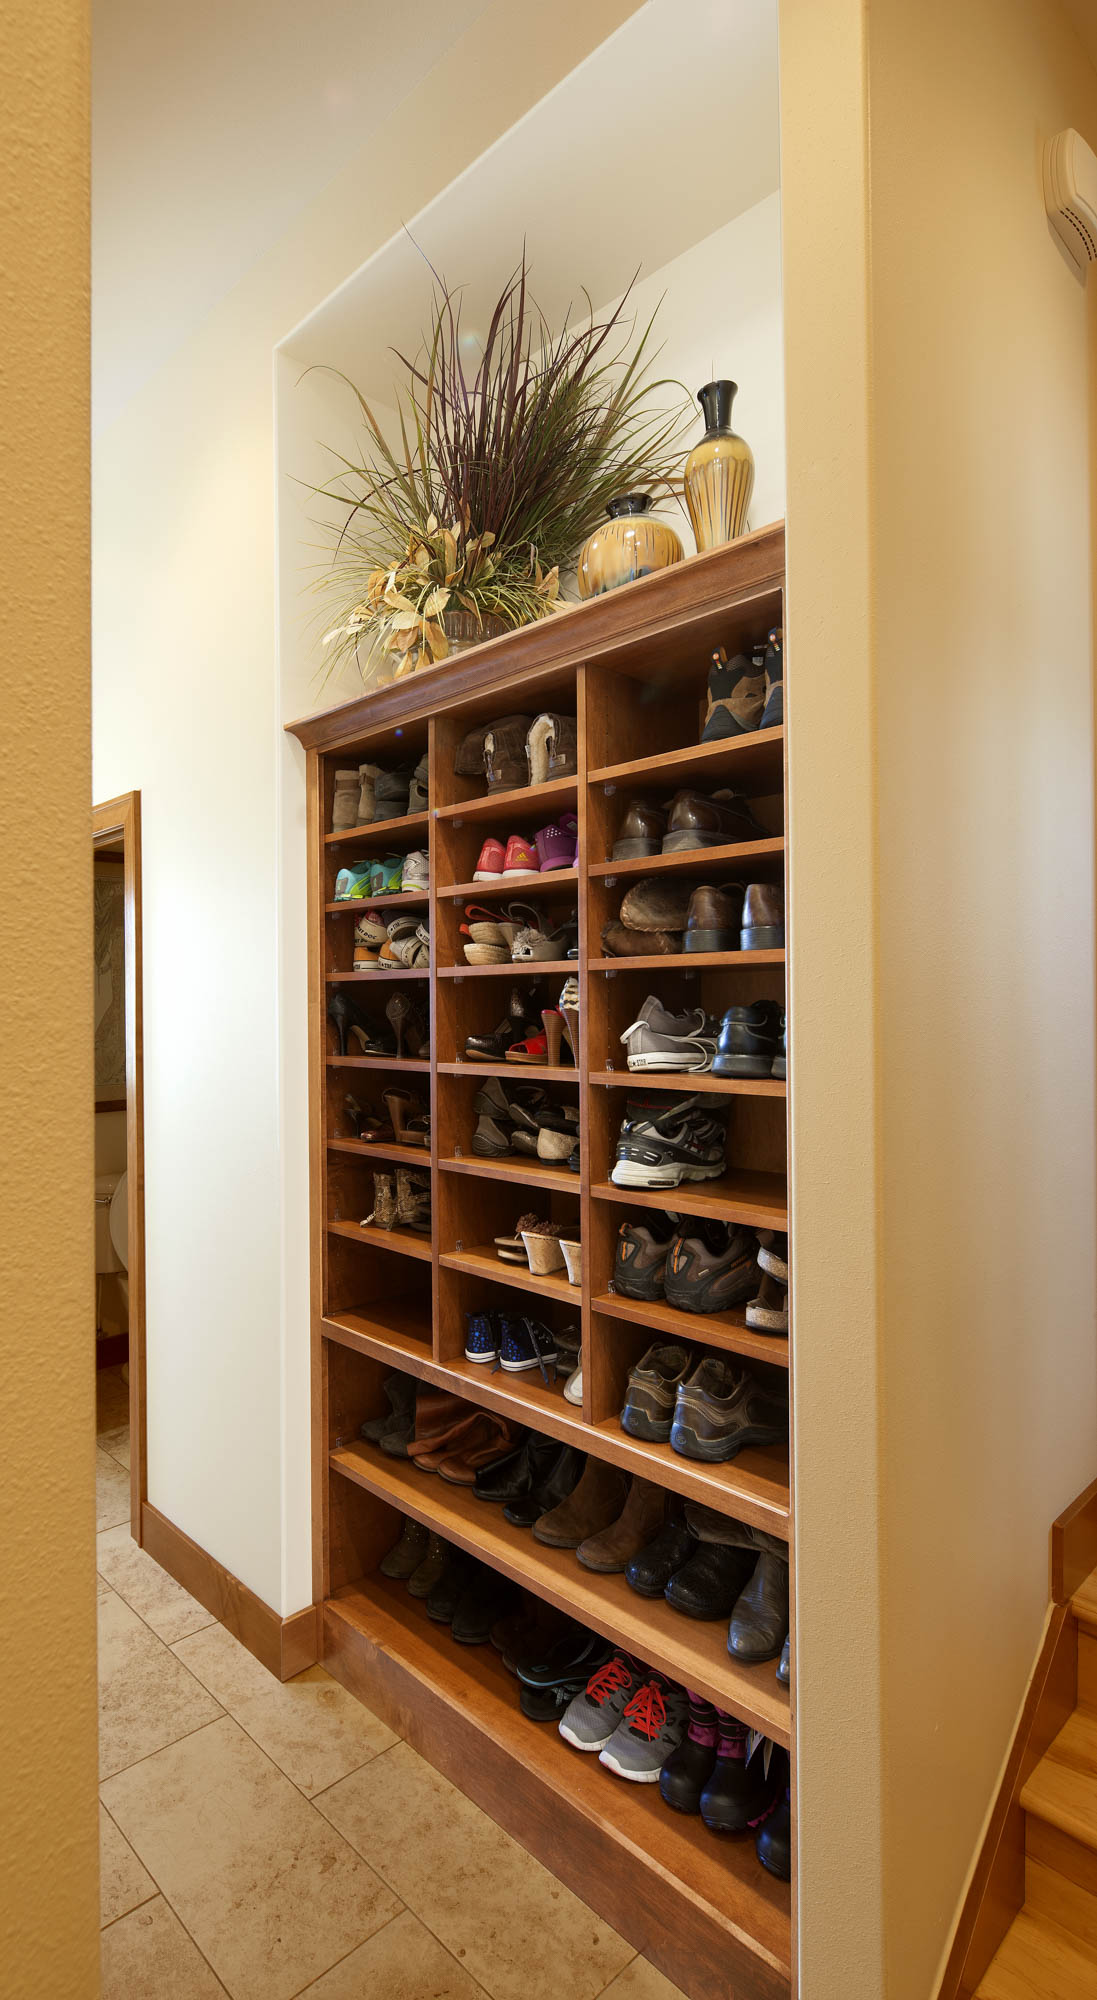 Stained mudroom shoe shelves in Autumn by Showplace Cabinetry